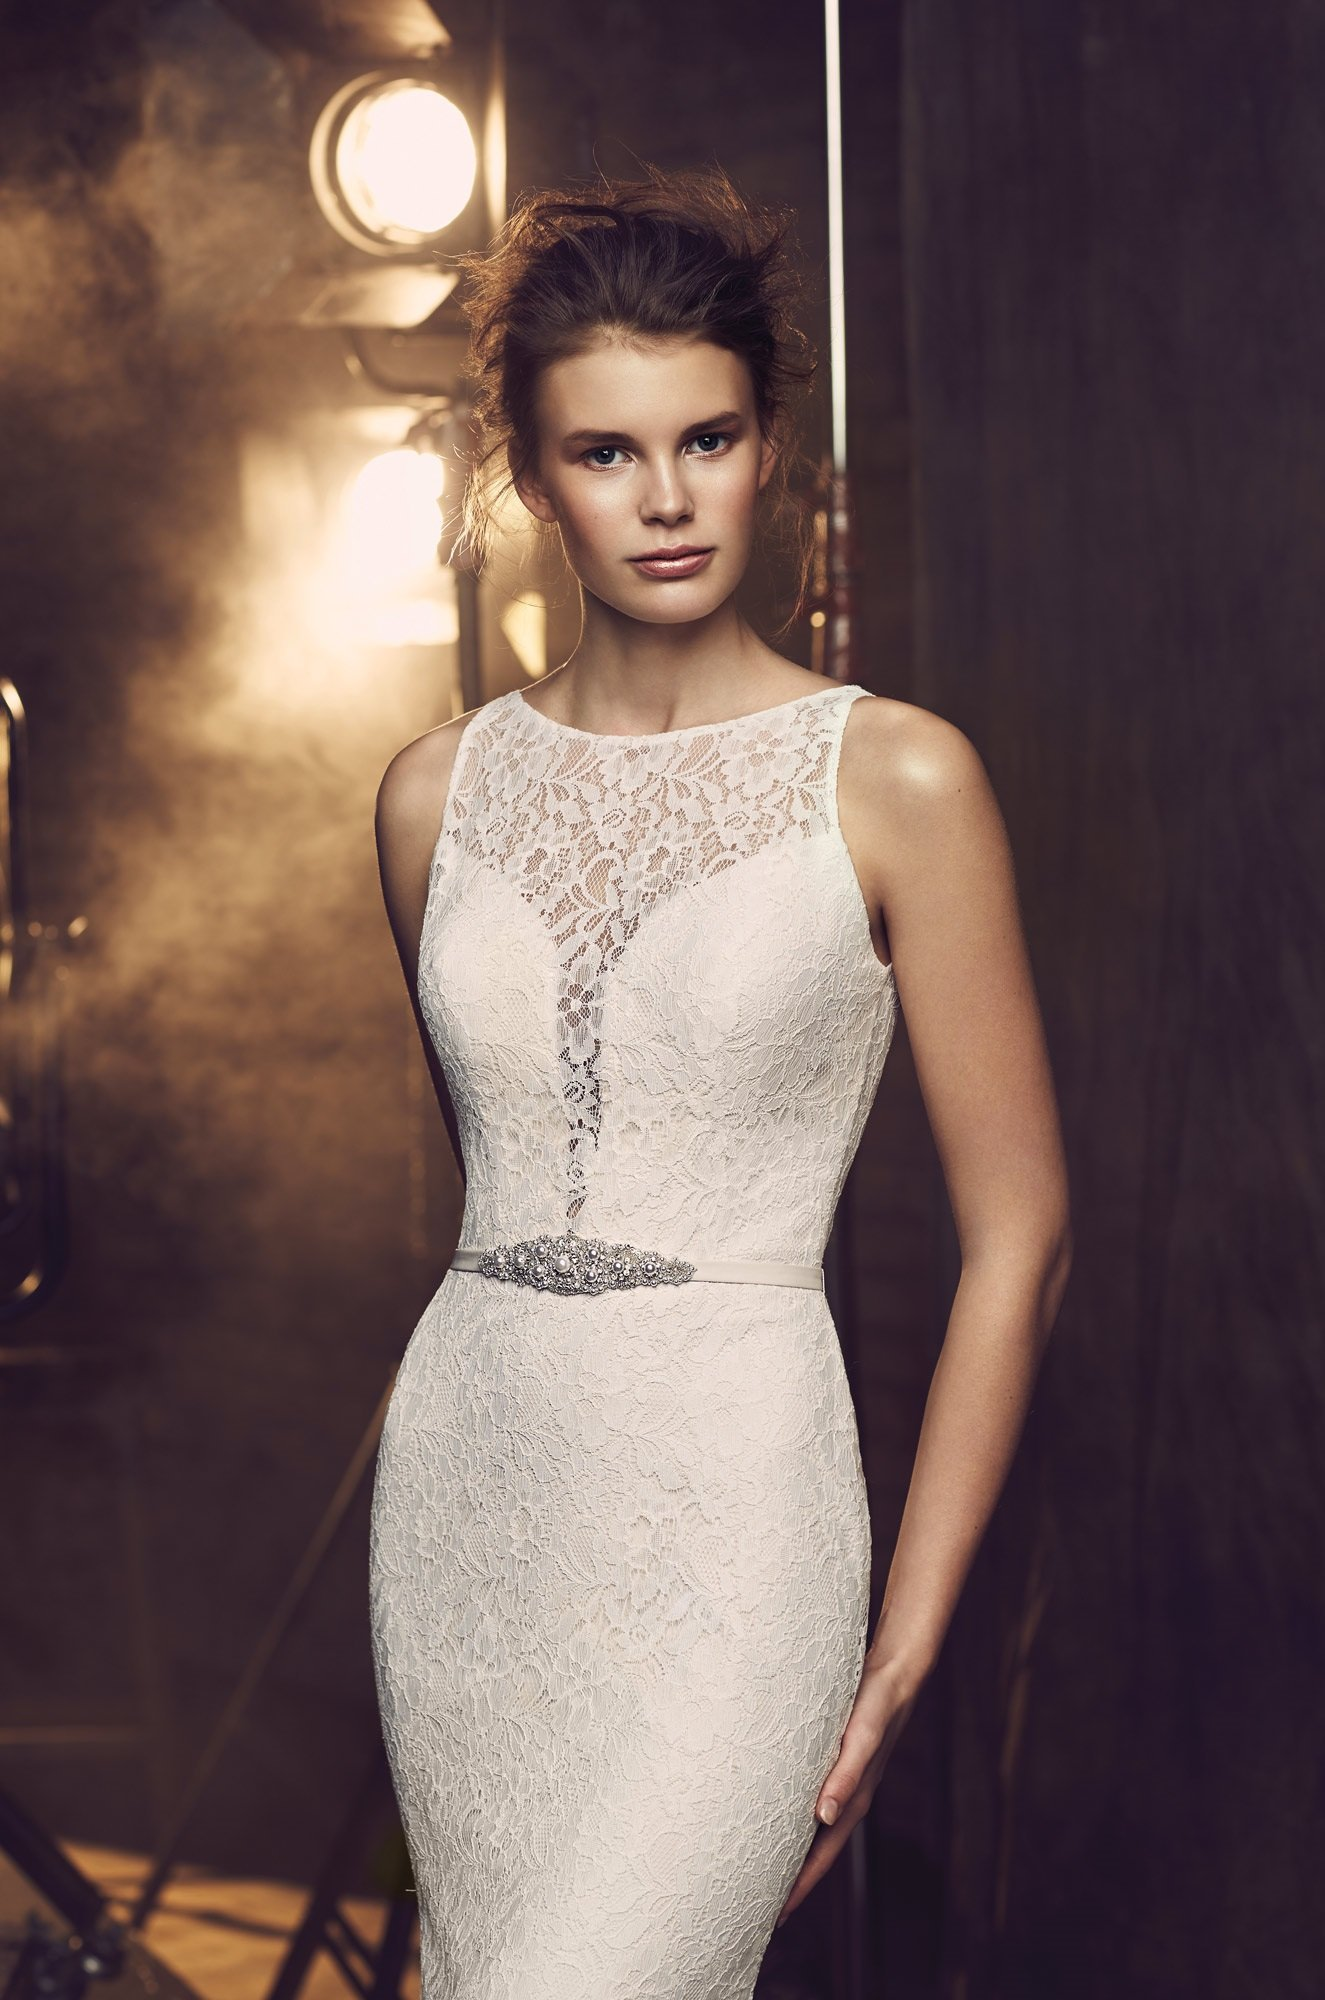 Fitted Lace Wedding Dress - Style #2078 | Mikaella Bridal